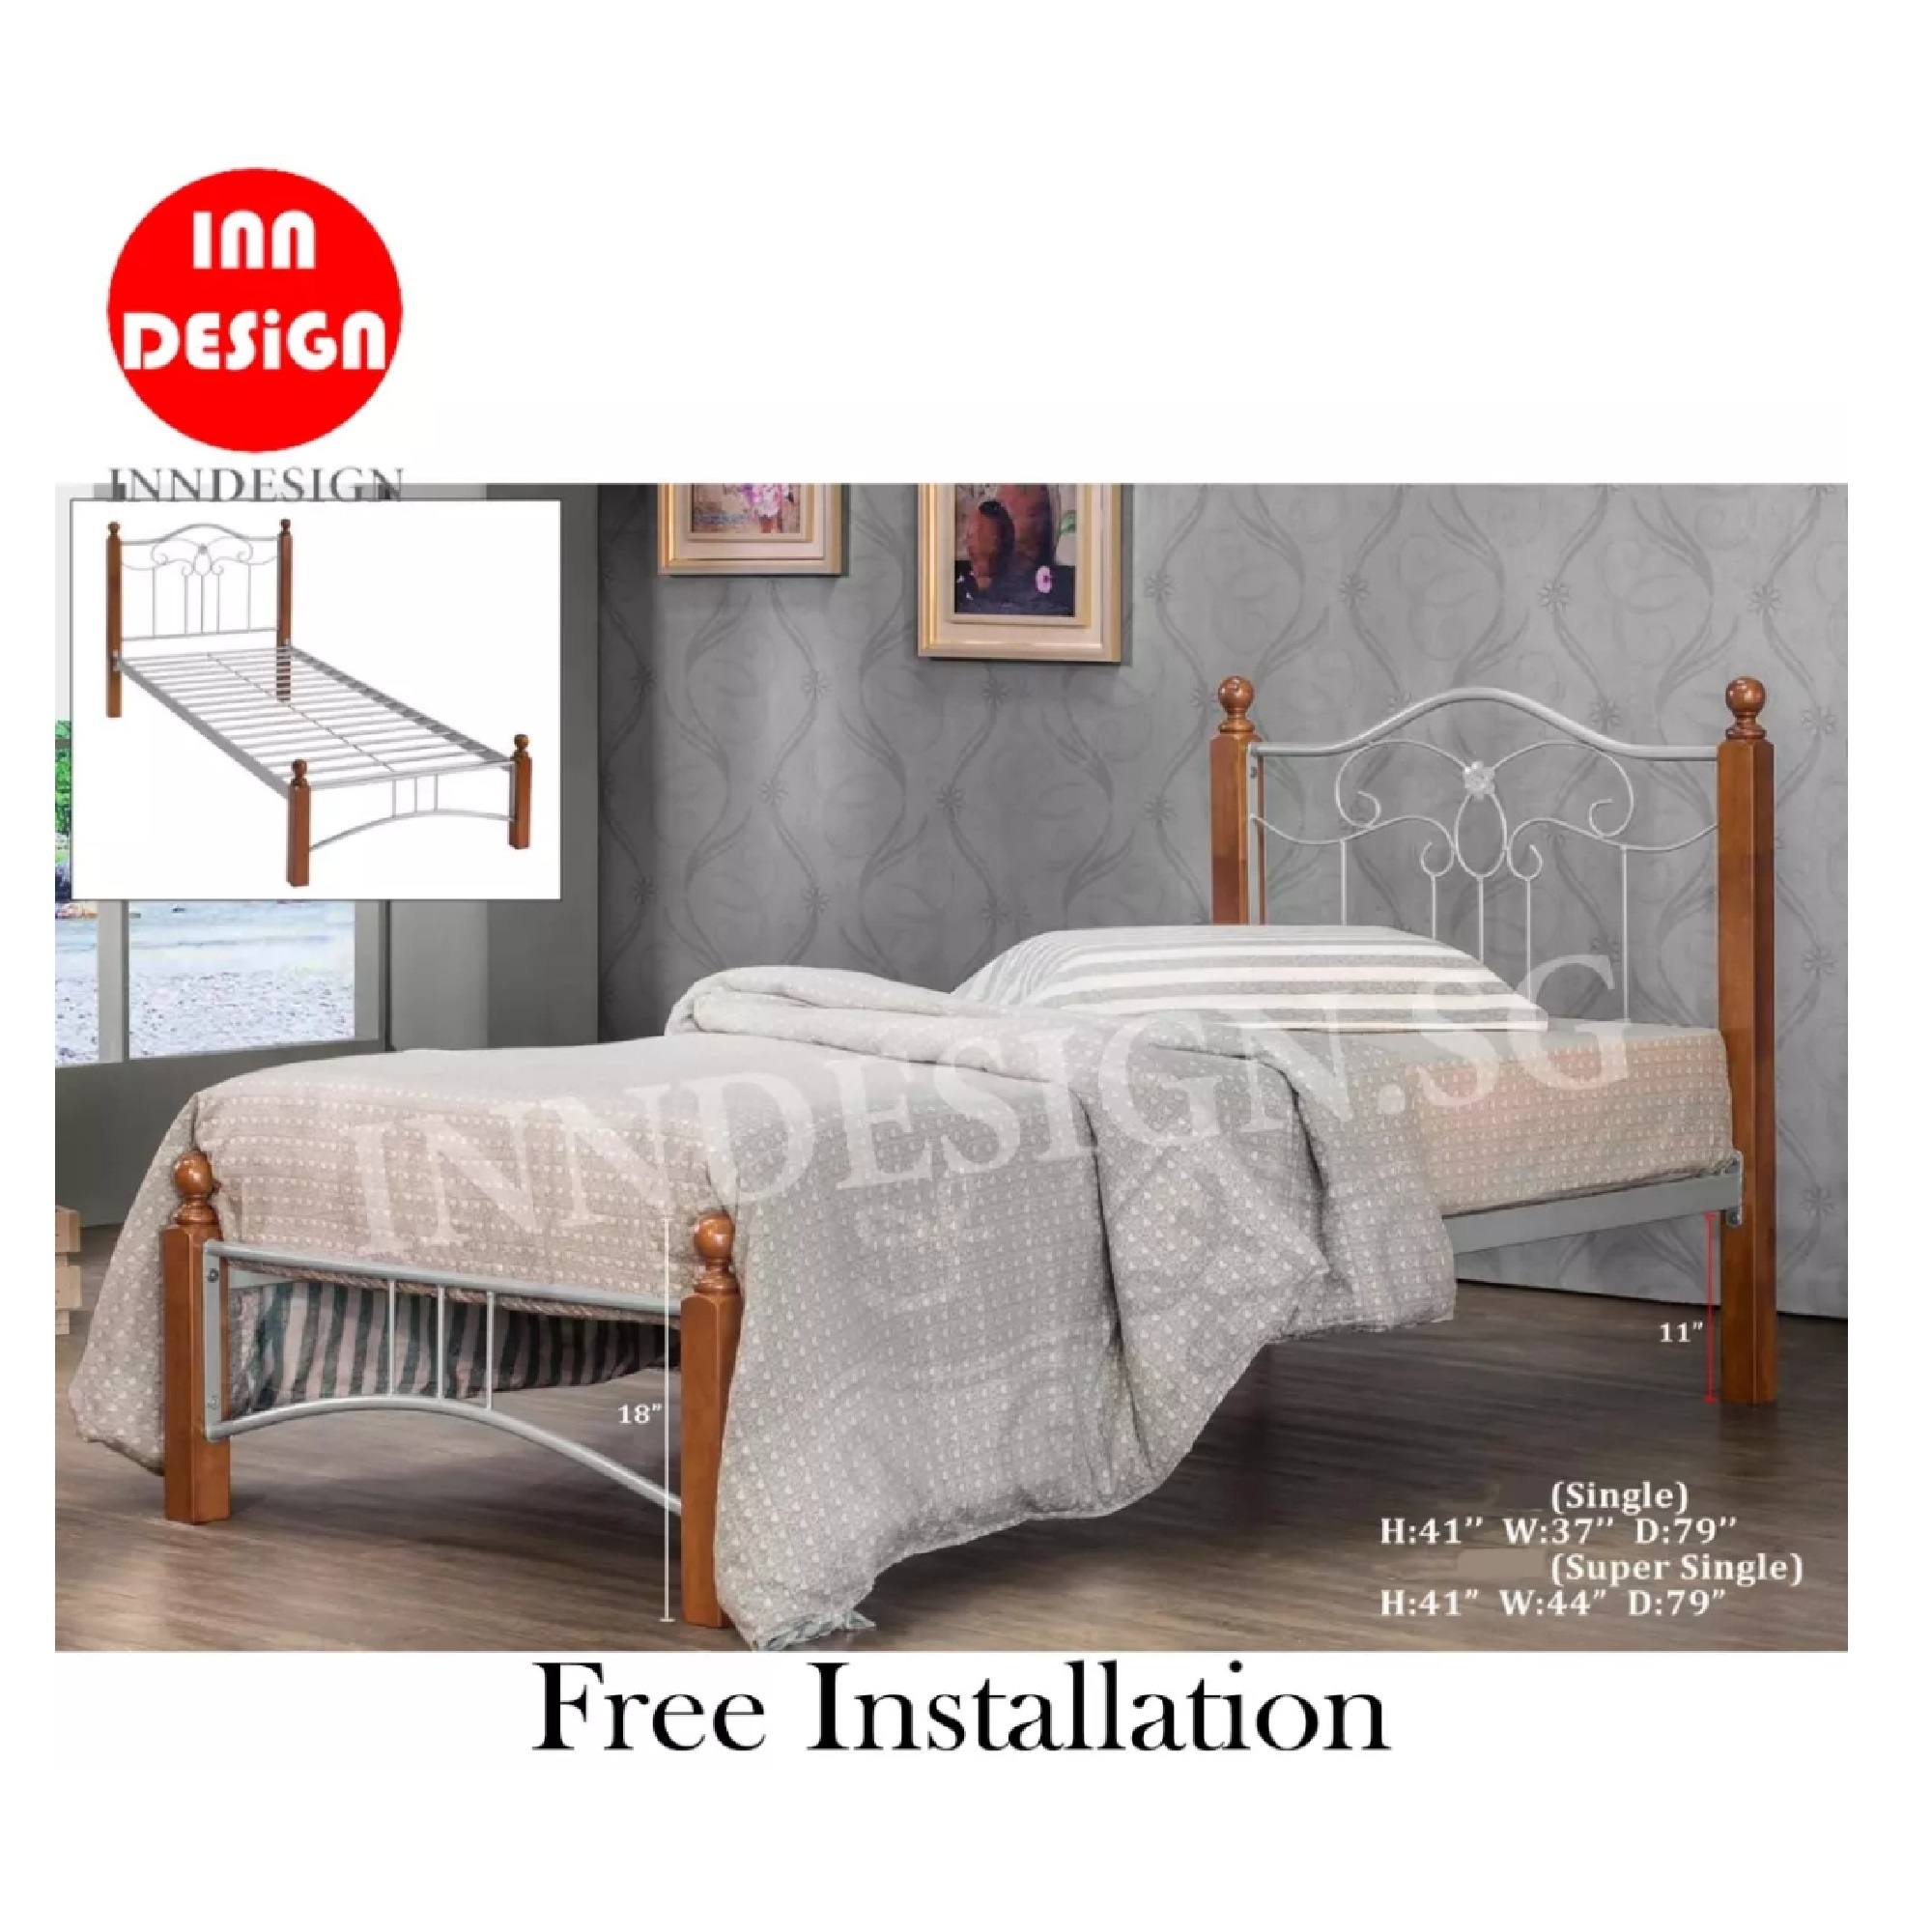 Super Single Metal Bedframe (Free Delivery and Installation)